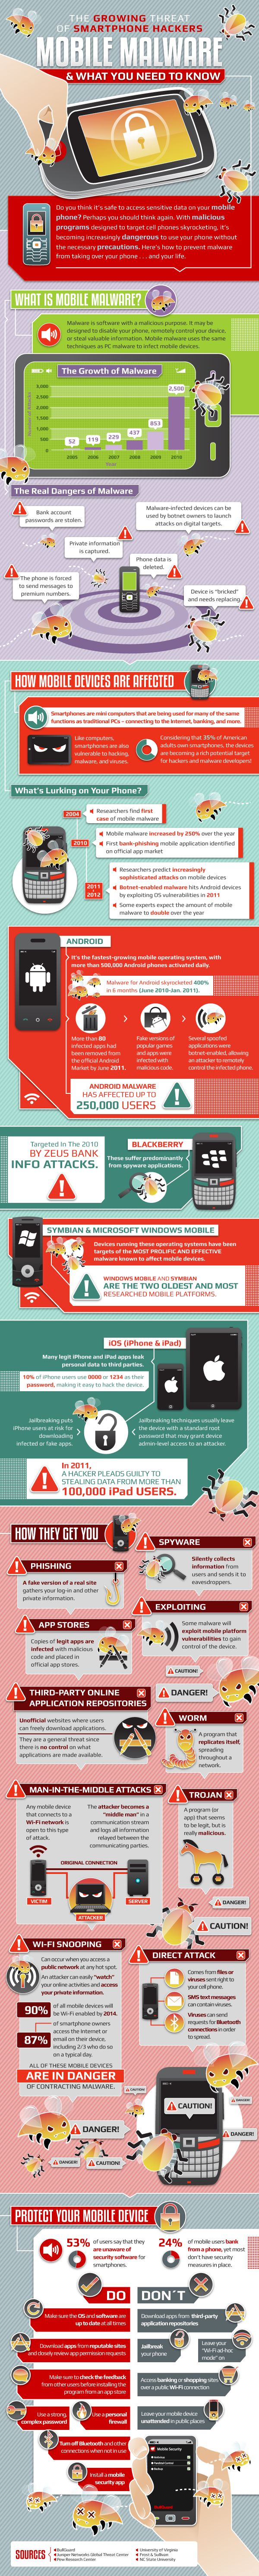 The Growing Threat of Smartphone Hackers - Mobile Malware